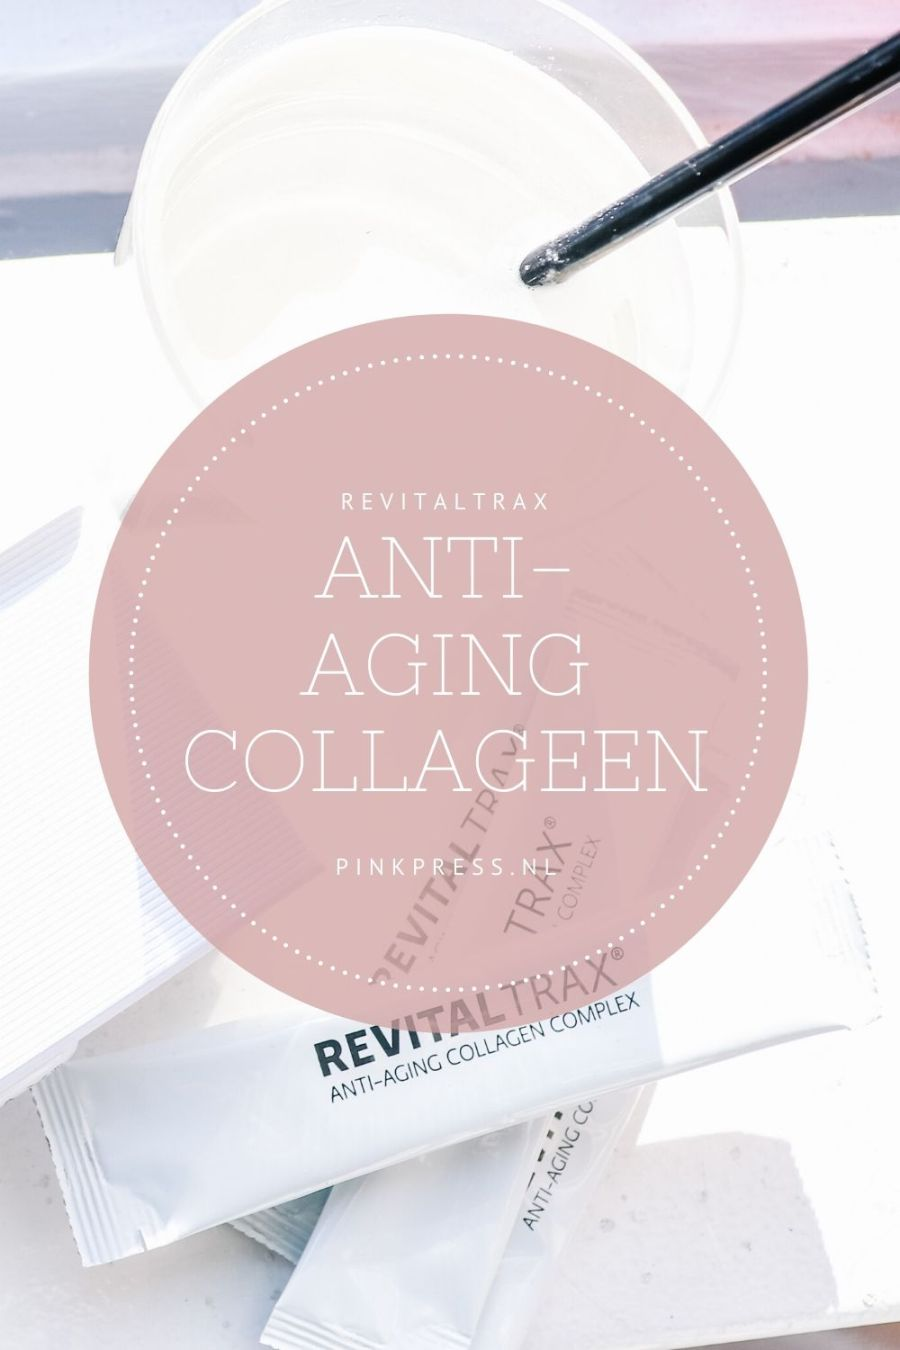 revitaltrex anti aging collageen - Schoonheid komt van binnen | de allerbeste beauty tips